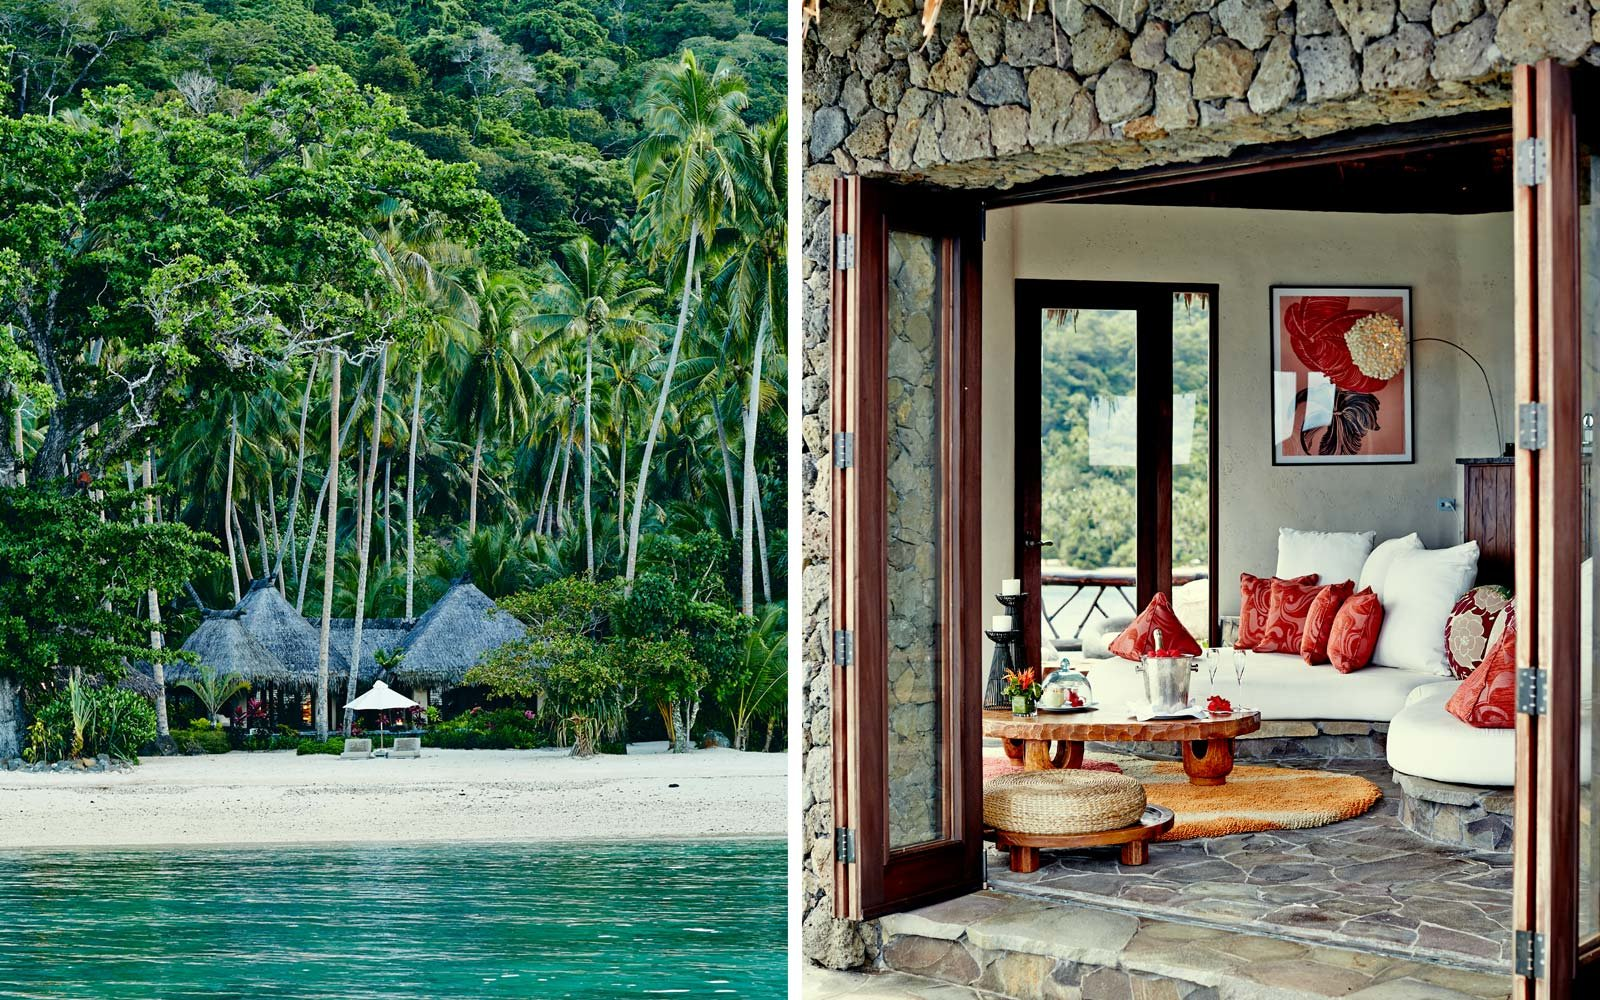 The Hilltop Villa at Laucala Island Resort in Fiji